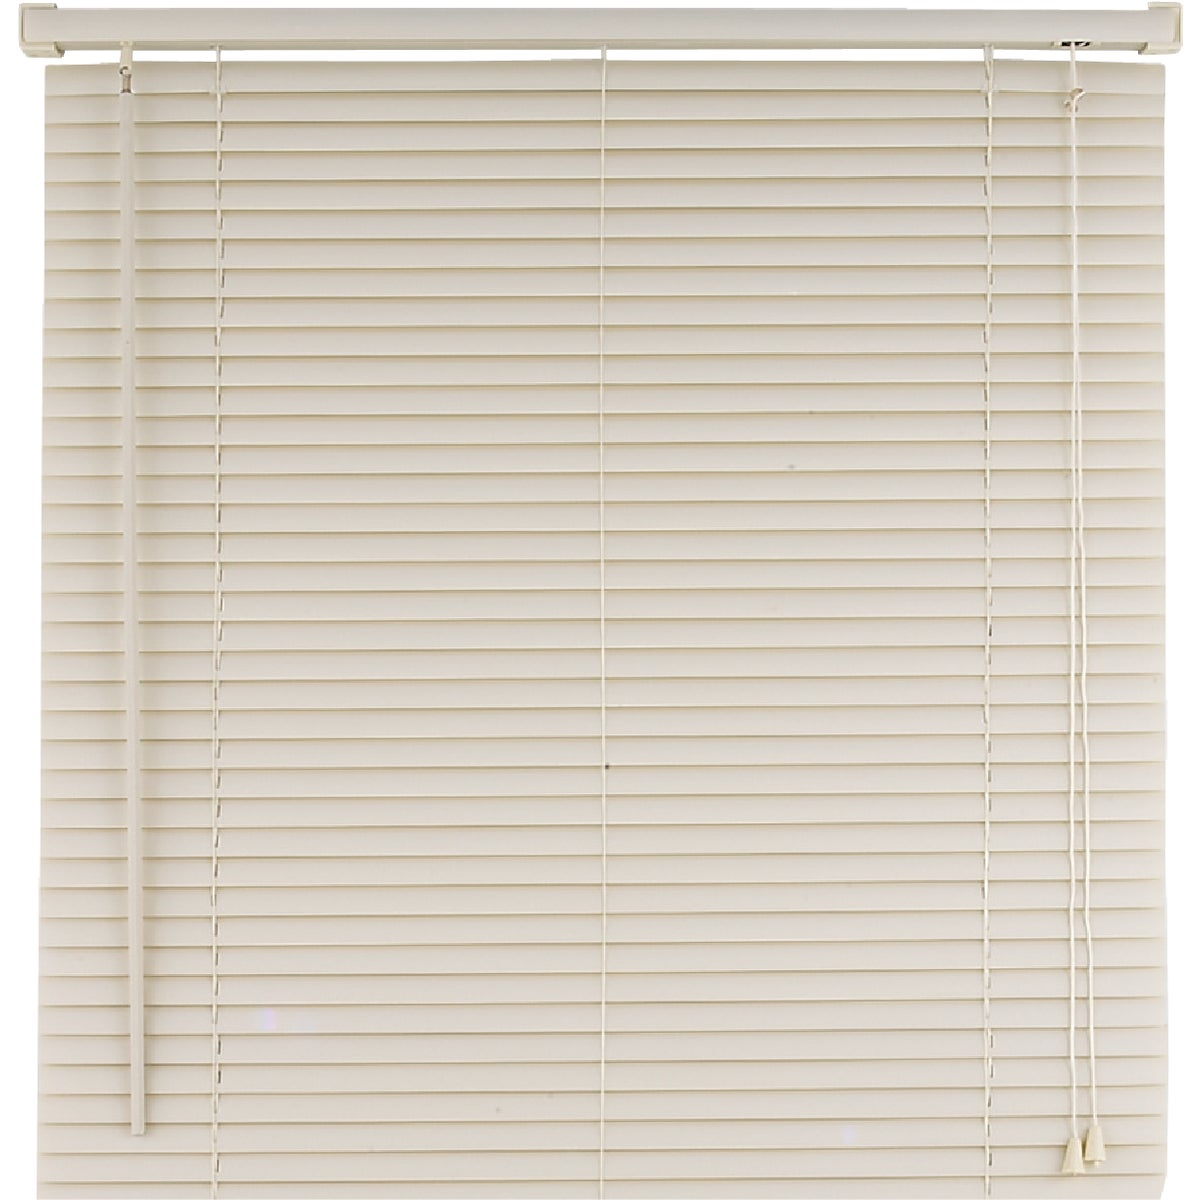 27X64 ALABASTER BLIND - 15035 by Lotus Wind Incom